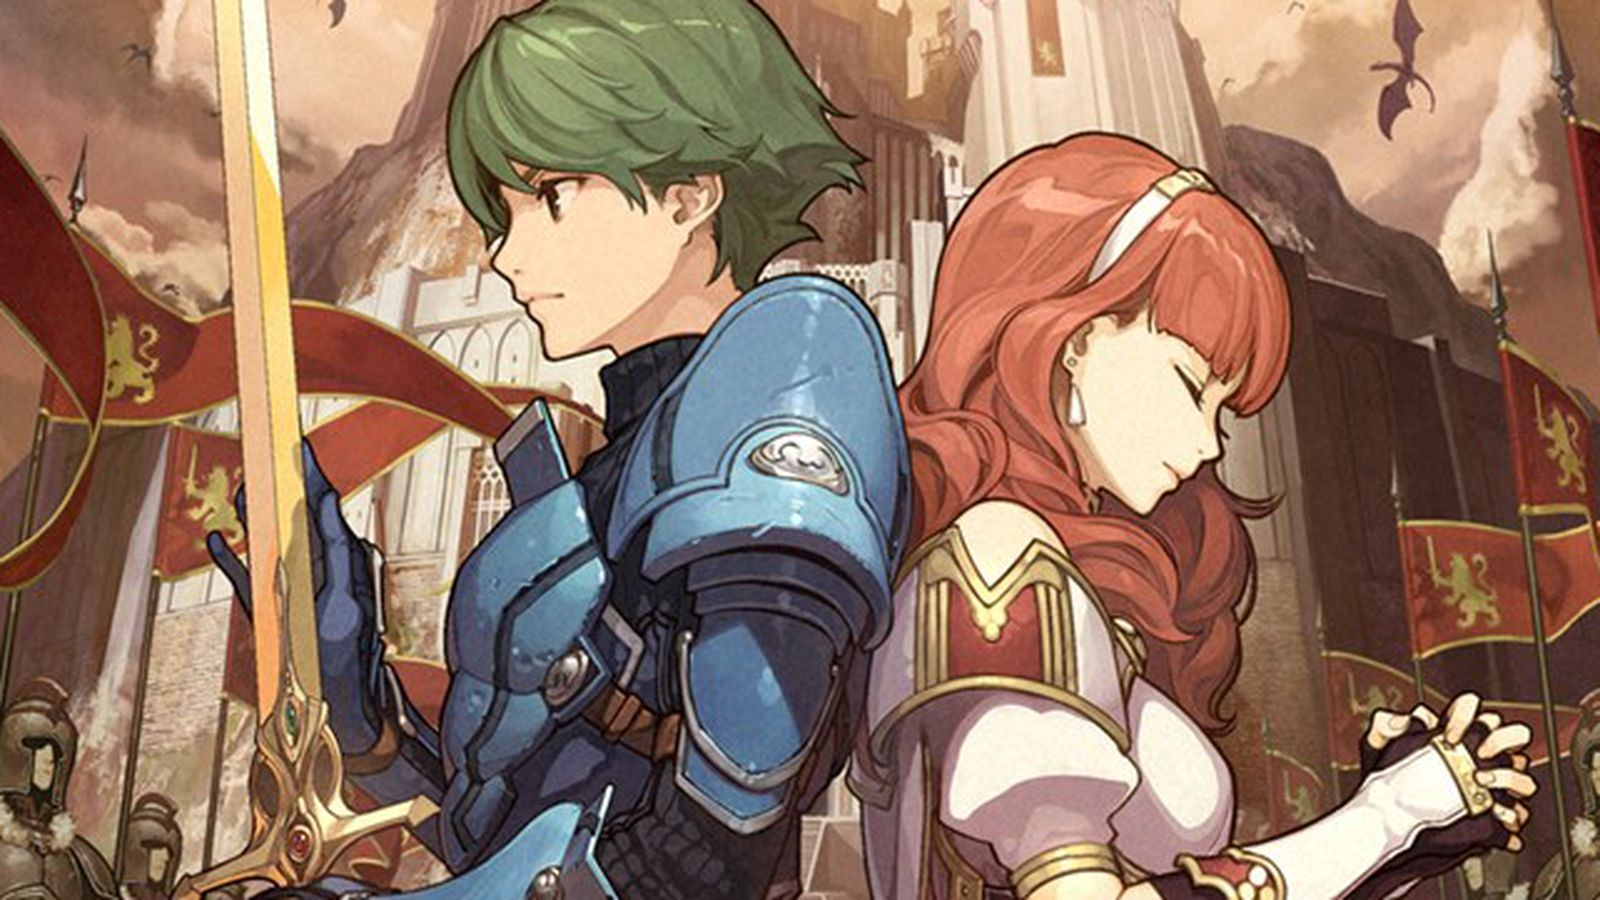 Fire Emblem Echoes: Shadows of Valentia may have a big learning curve for modern fans